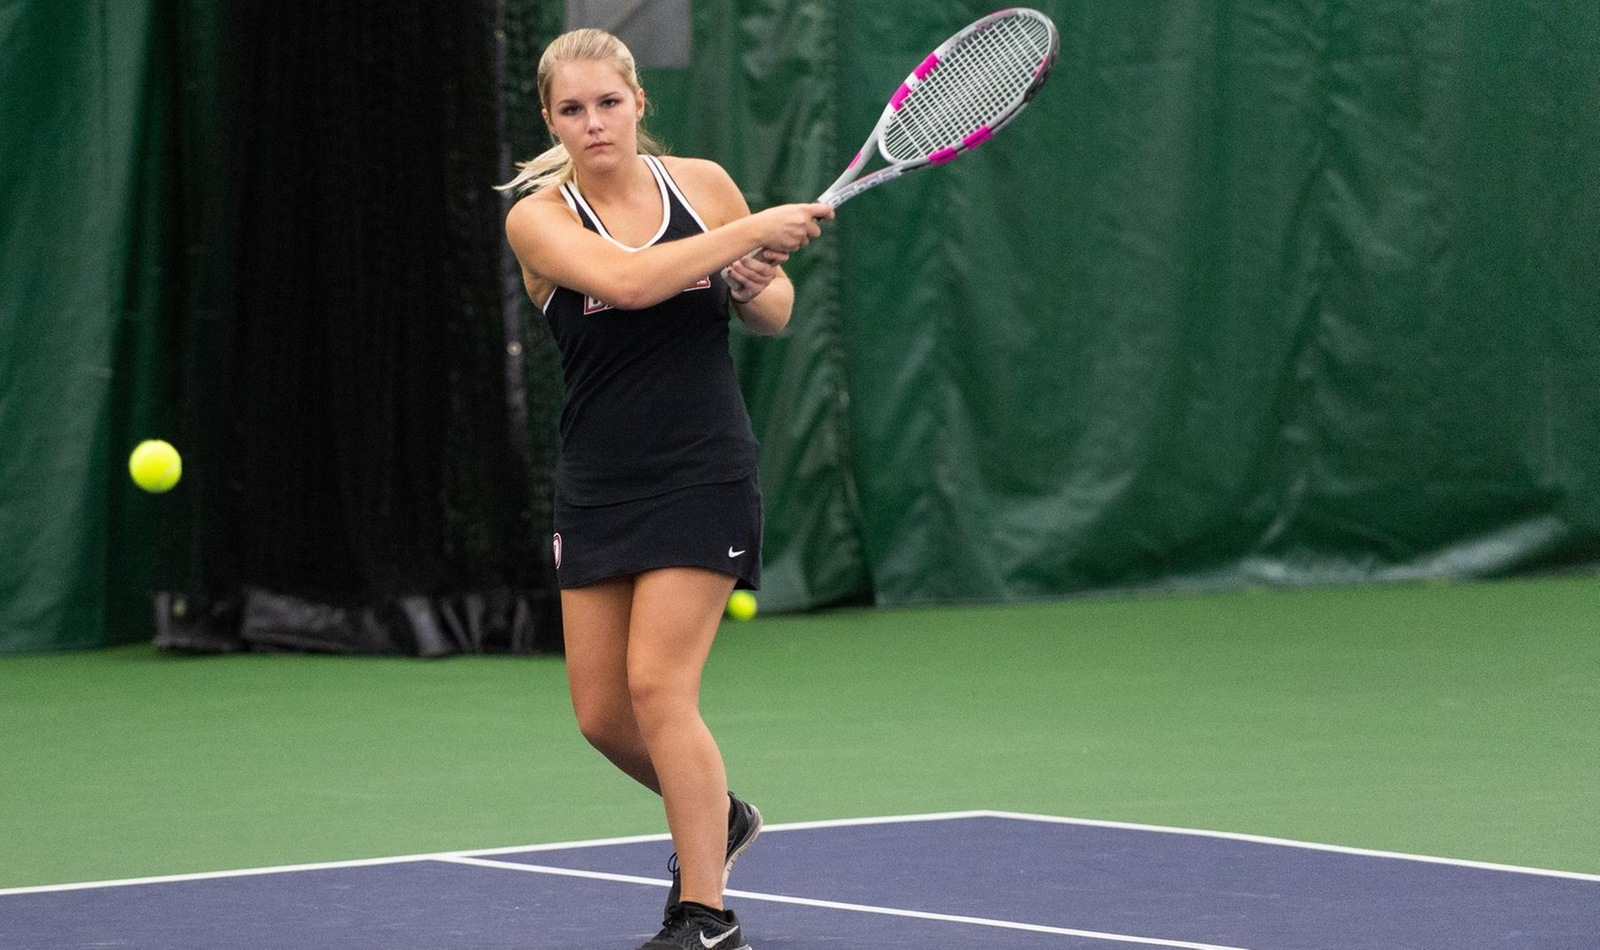 Lexi Dickson (pictured above) earned her first collegiate against Altoona